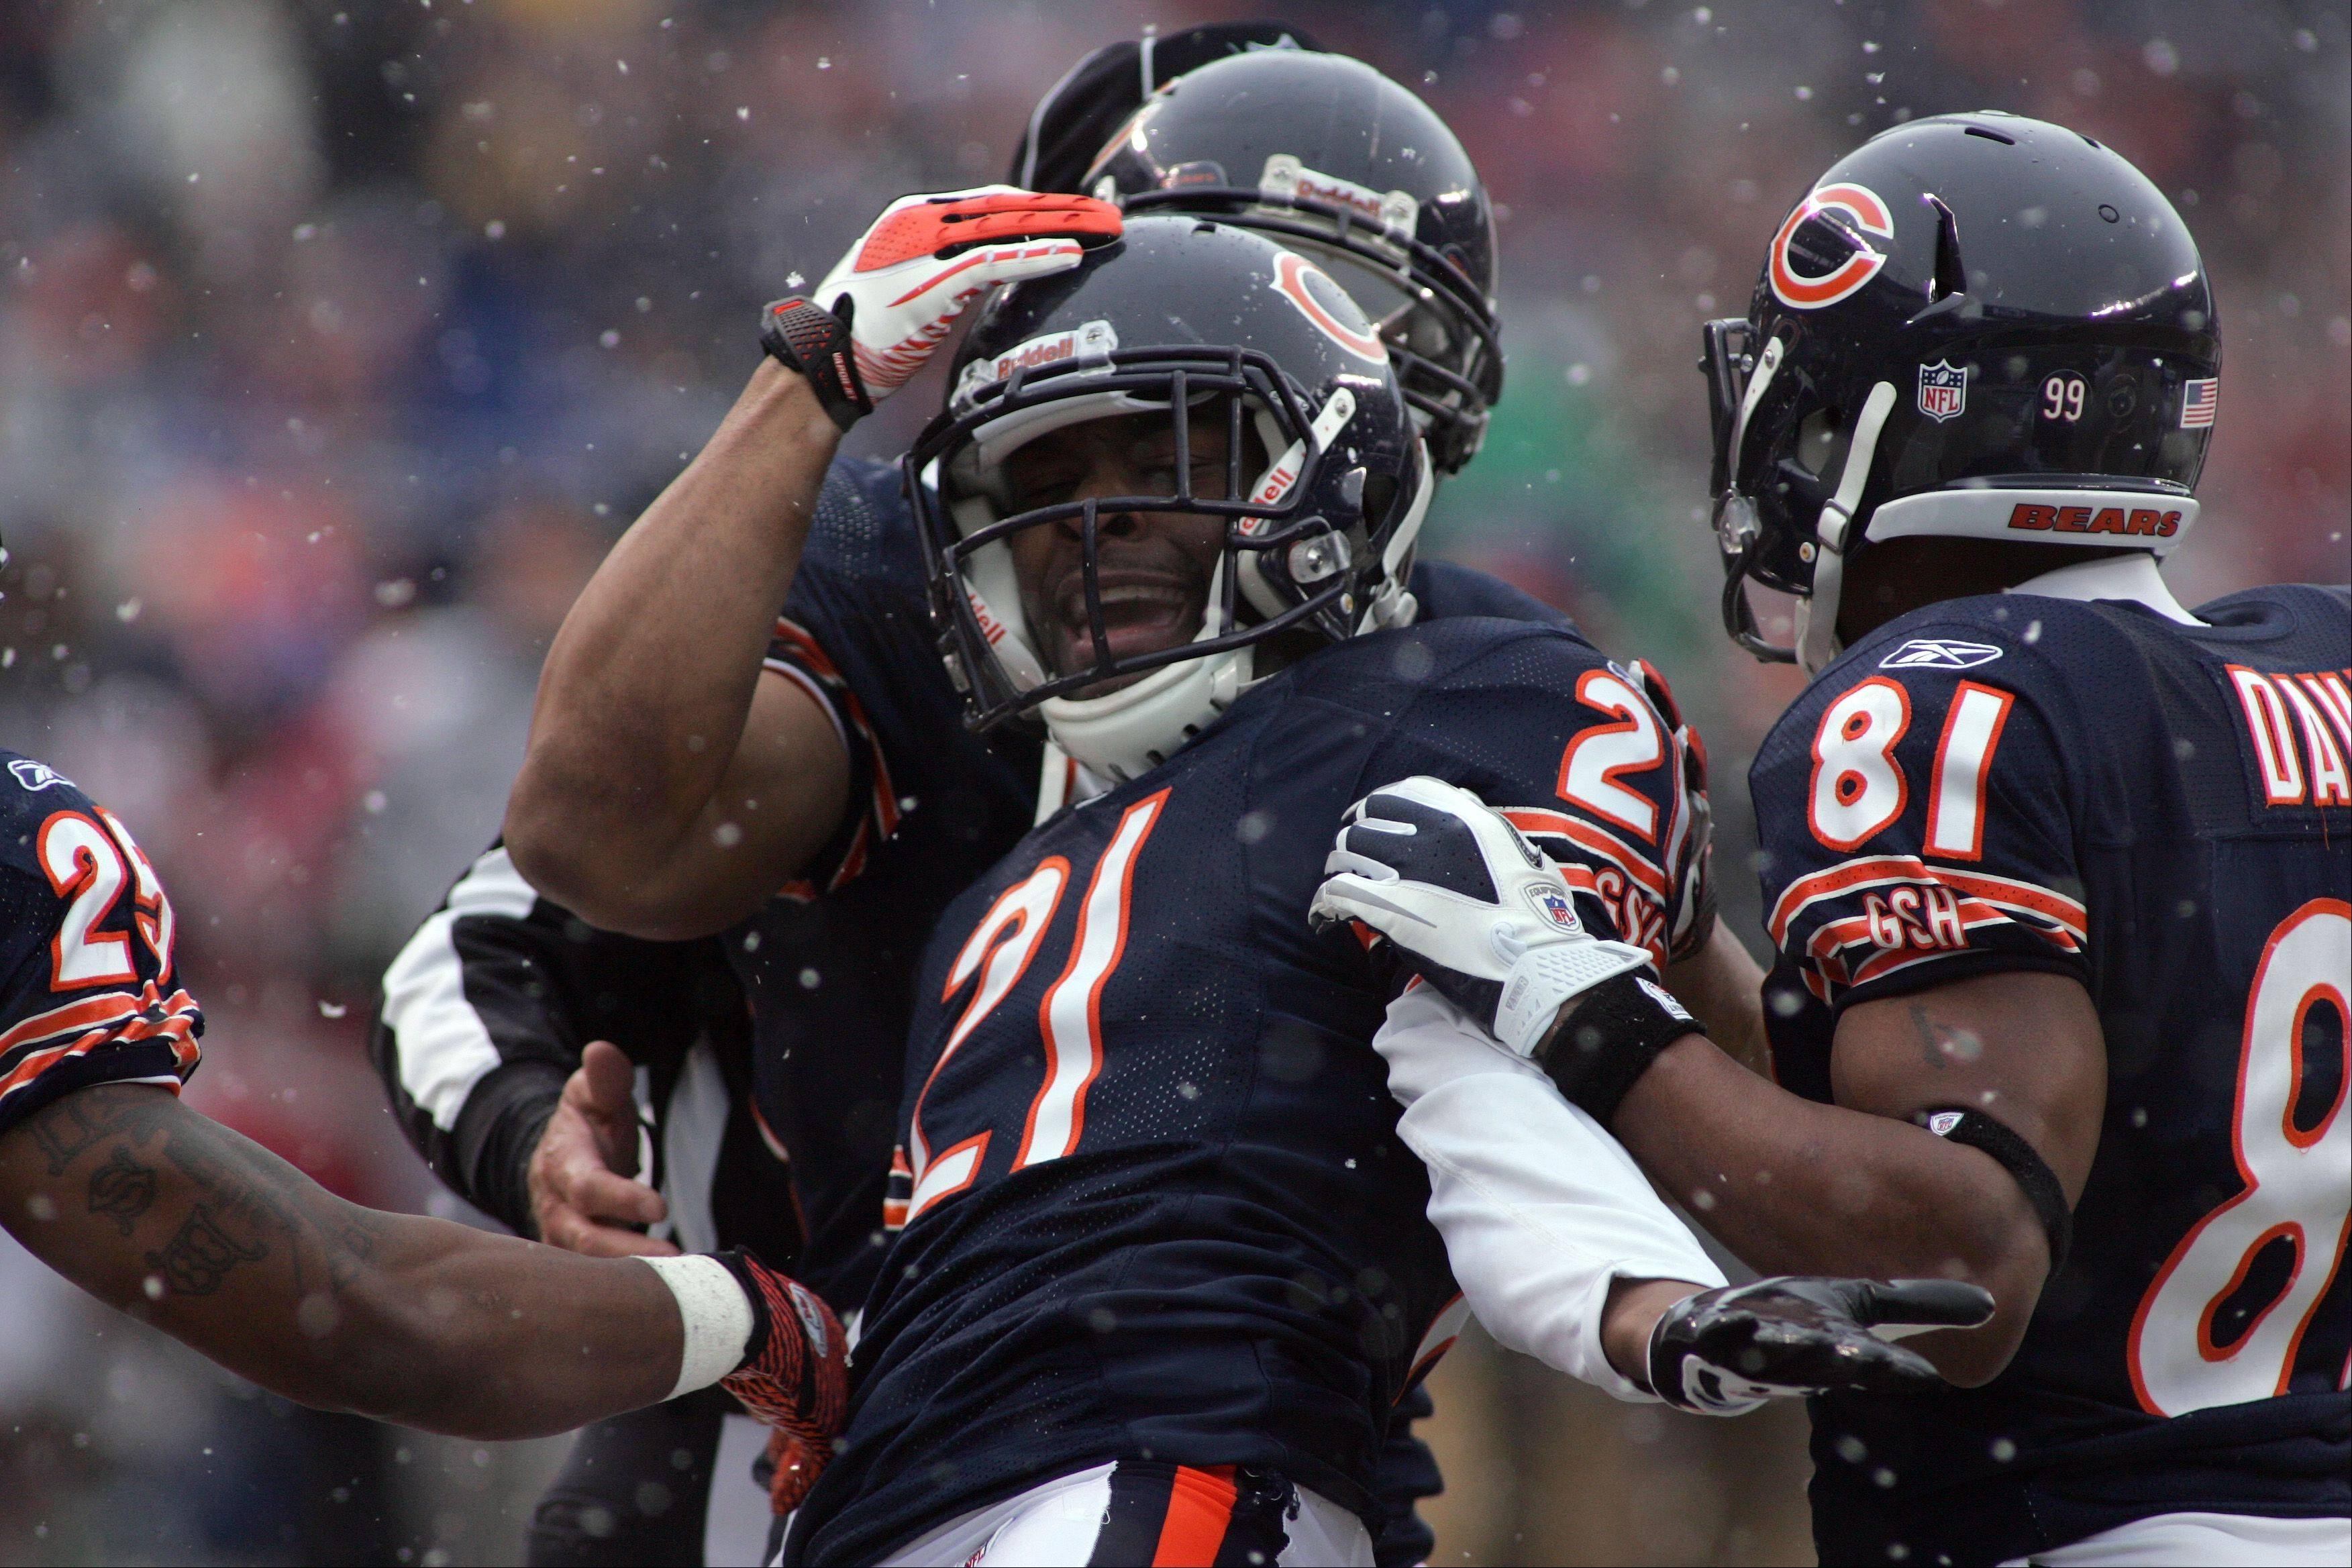 Bears cornerback Corey Graham (21) led the team in special teams tackles last season, but many of his teammates on those unit are gone. Graham will join Sam Hurd this season as the two key figures on the kickoff team.